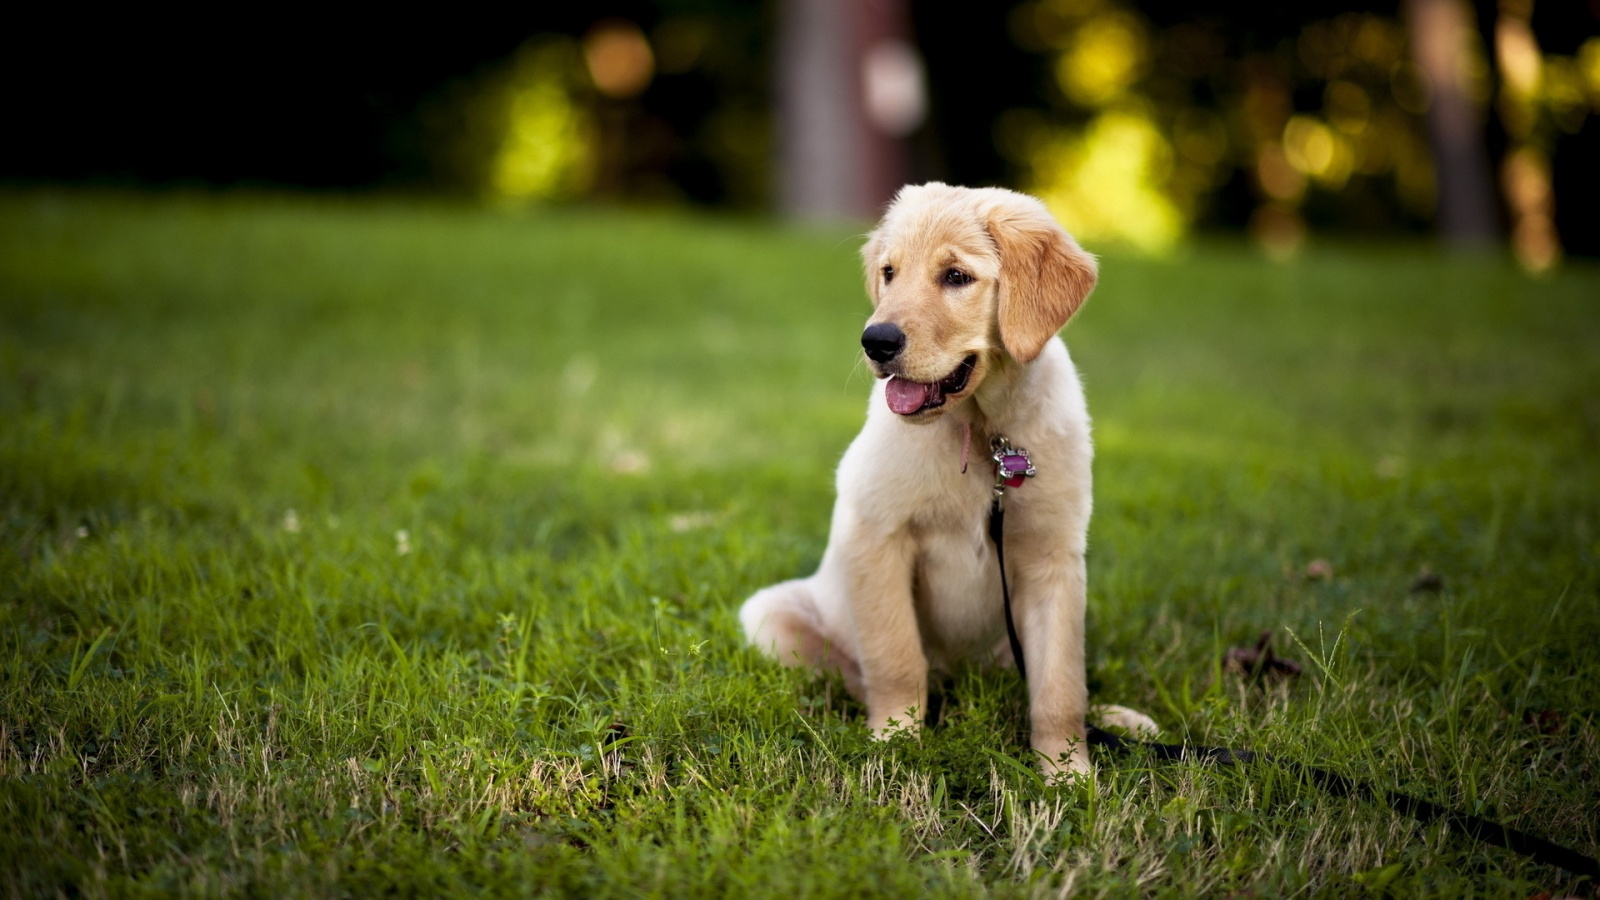 Cute Puppy Images Wallpaper Fluffy 12 Fantastic Hd Labrador Wallpapers